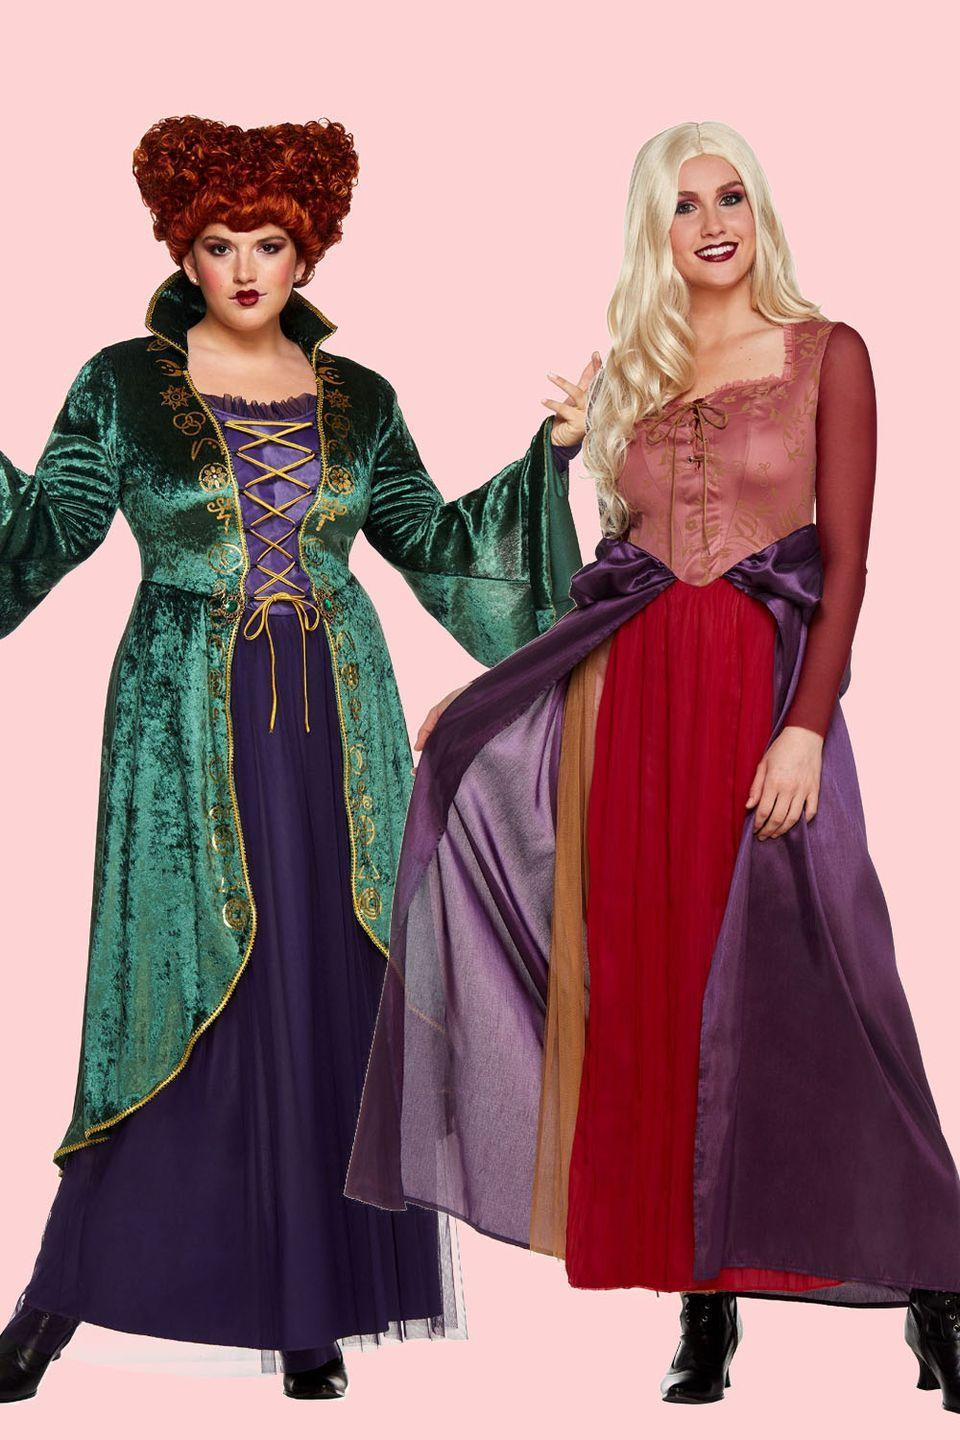 """<p><em>Hocus Pocus</em> is one of our very <a href=""""https://www.goodhousekeeping.com/holidays/halloween-ideas/g2661/halloween-movies/"""" rel=""""nofollow noopener"""" target=""""_blank"""" data-ylk=""""slk:favorite Halloween movies"""" class=""""link rapid-noclick-resp"""">favorite Halloween movies</a>, obviously. So what better badass Halloween costumes exist besides Winifred and Sarah?</p><p><a class=""""link rapid-noclick-resp"""" href=""""https://go.redirectingat.com?id=74968X1596630&url=https%3A%2F%2Fwww.spirithalloween.com%2Fproduct%2Fwinifred-sanderson-dress-hocus-pocus%2F165182.uts&sref=https%3A%2F%2Fwww.goodhousekeeping.com%2Fholidays%2Fhalloween-ideas%2Fg28102891%2Fbadass-halloween-costumes-women%2F"""" rel=""""nofollow noopener"""" target=""""_blank"""" data-ylk=""""slk:SHOP WINIFRED COSTUME"""">SHOP WINIFRED COSTUME</a></p><p><a class=""""link rapid-noclick-resp"""" href=""""https://go.redirectingat.com?id=74968X1596630&url=https%3A%2F%2Fwww.spirithalloween.com%2Fproduct%2Fadult-sarah-sanderson-costume-hocus-pocus%2F149014.uts&sref=https%3A%2F%2Fwww.goodhousekeeping.com%2Fholidays%2Fhalloween-ideas%2Fg28102891%2Fbadass-halloween-costumes-women%2F"""" rel=""""nofollow noopener"""" target=""""_blank"""" data-ylk=""""slk:SHOP SARAH COSTUME"""">SHOP SARAH COSTUME </a> </p>"""